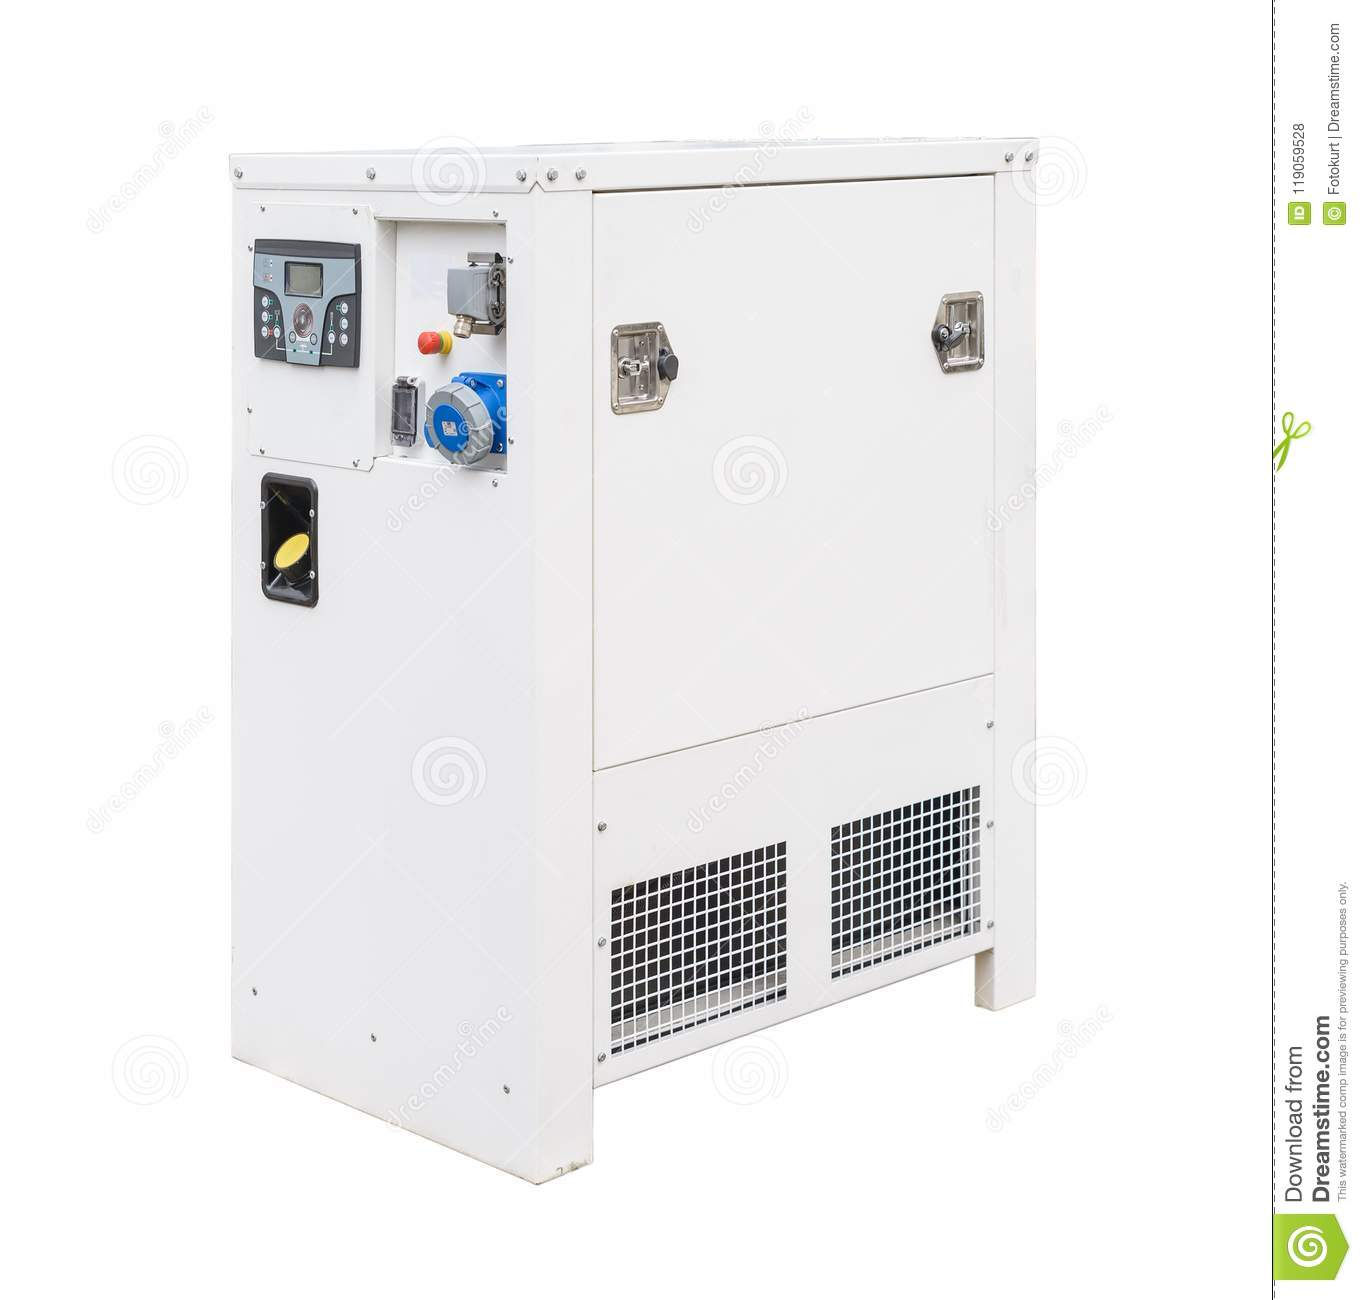 Mobile Portable Diesel Or Gasoline Generator With A Radiator Circuit Breaker Remote Control